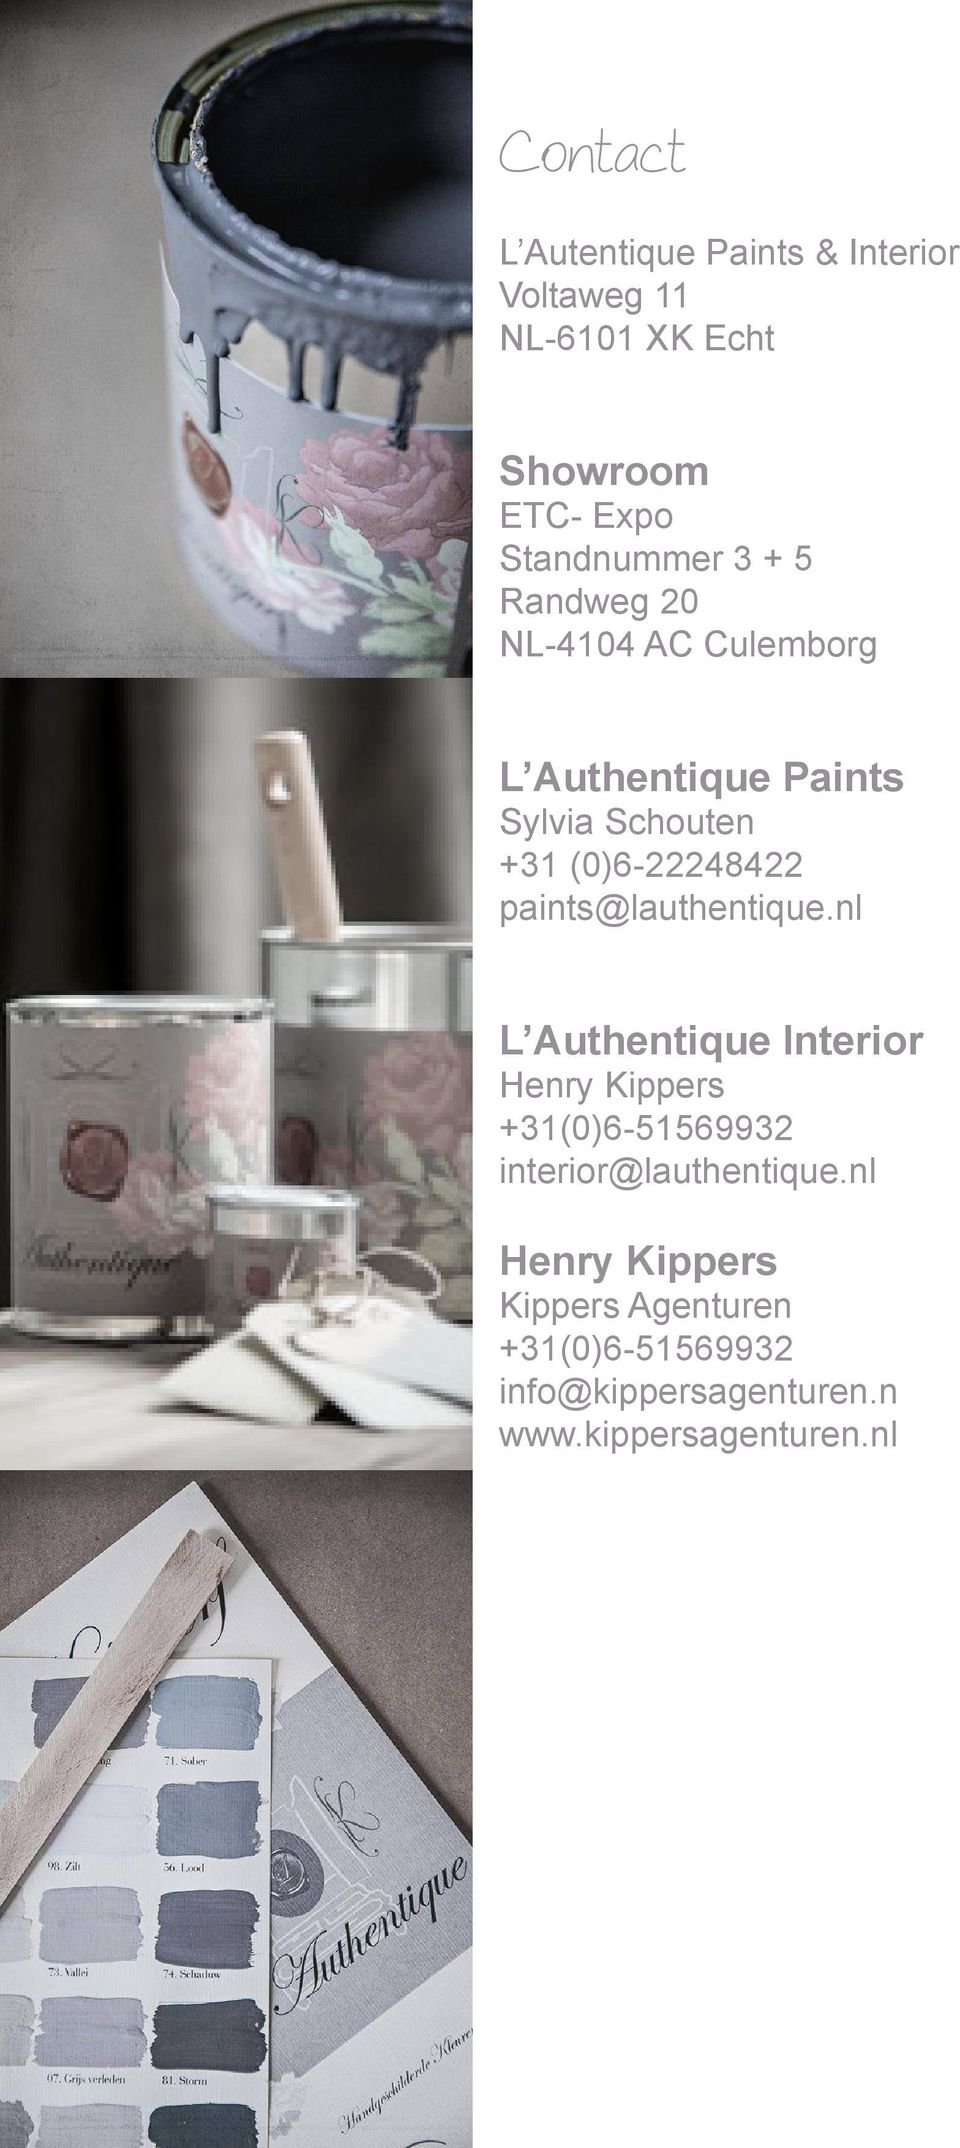 paints@lauthentique.